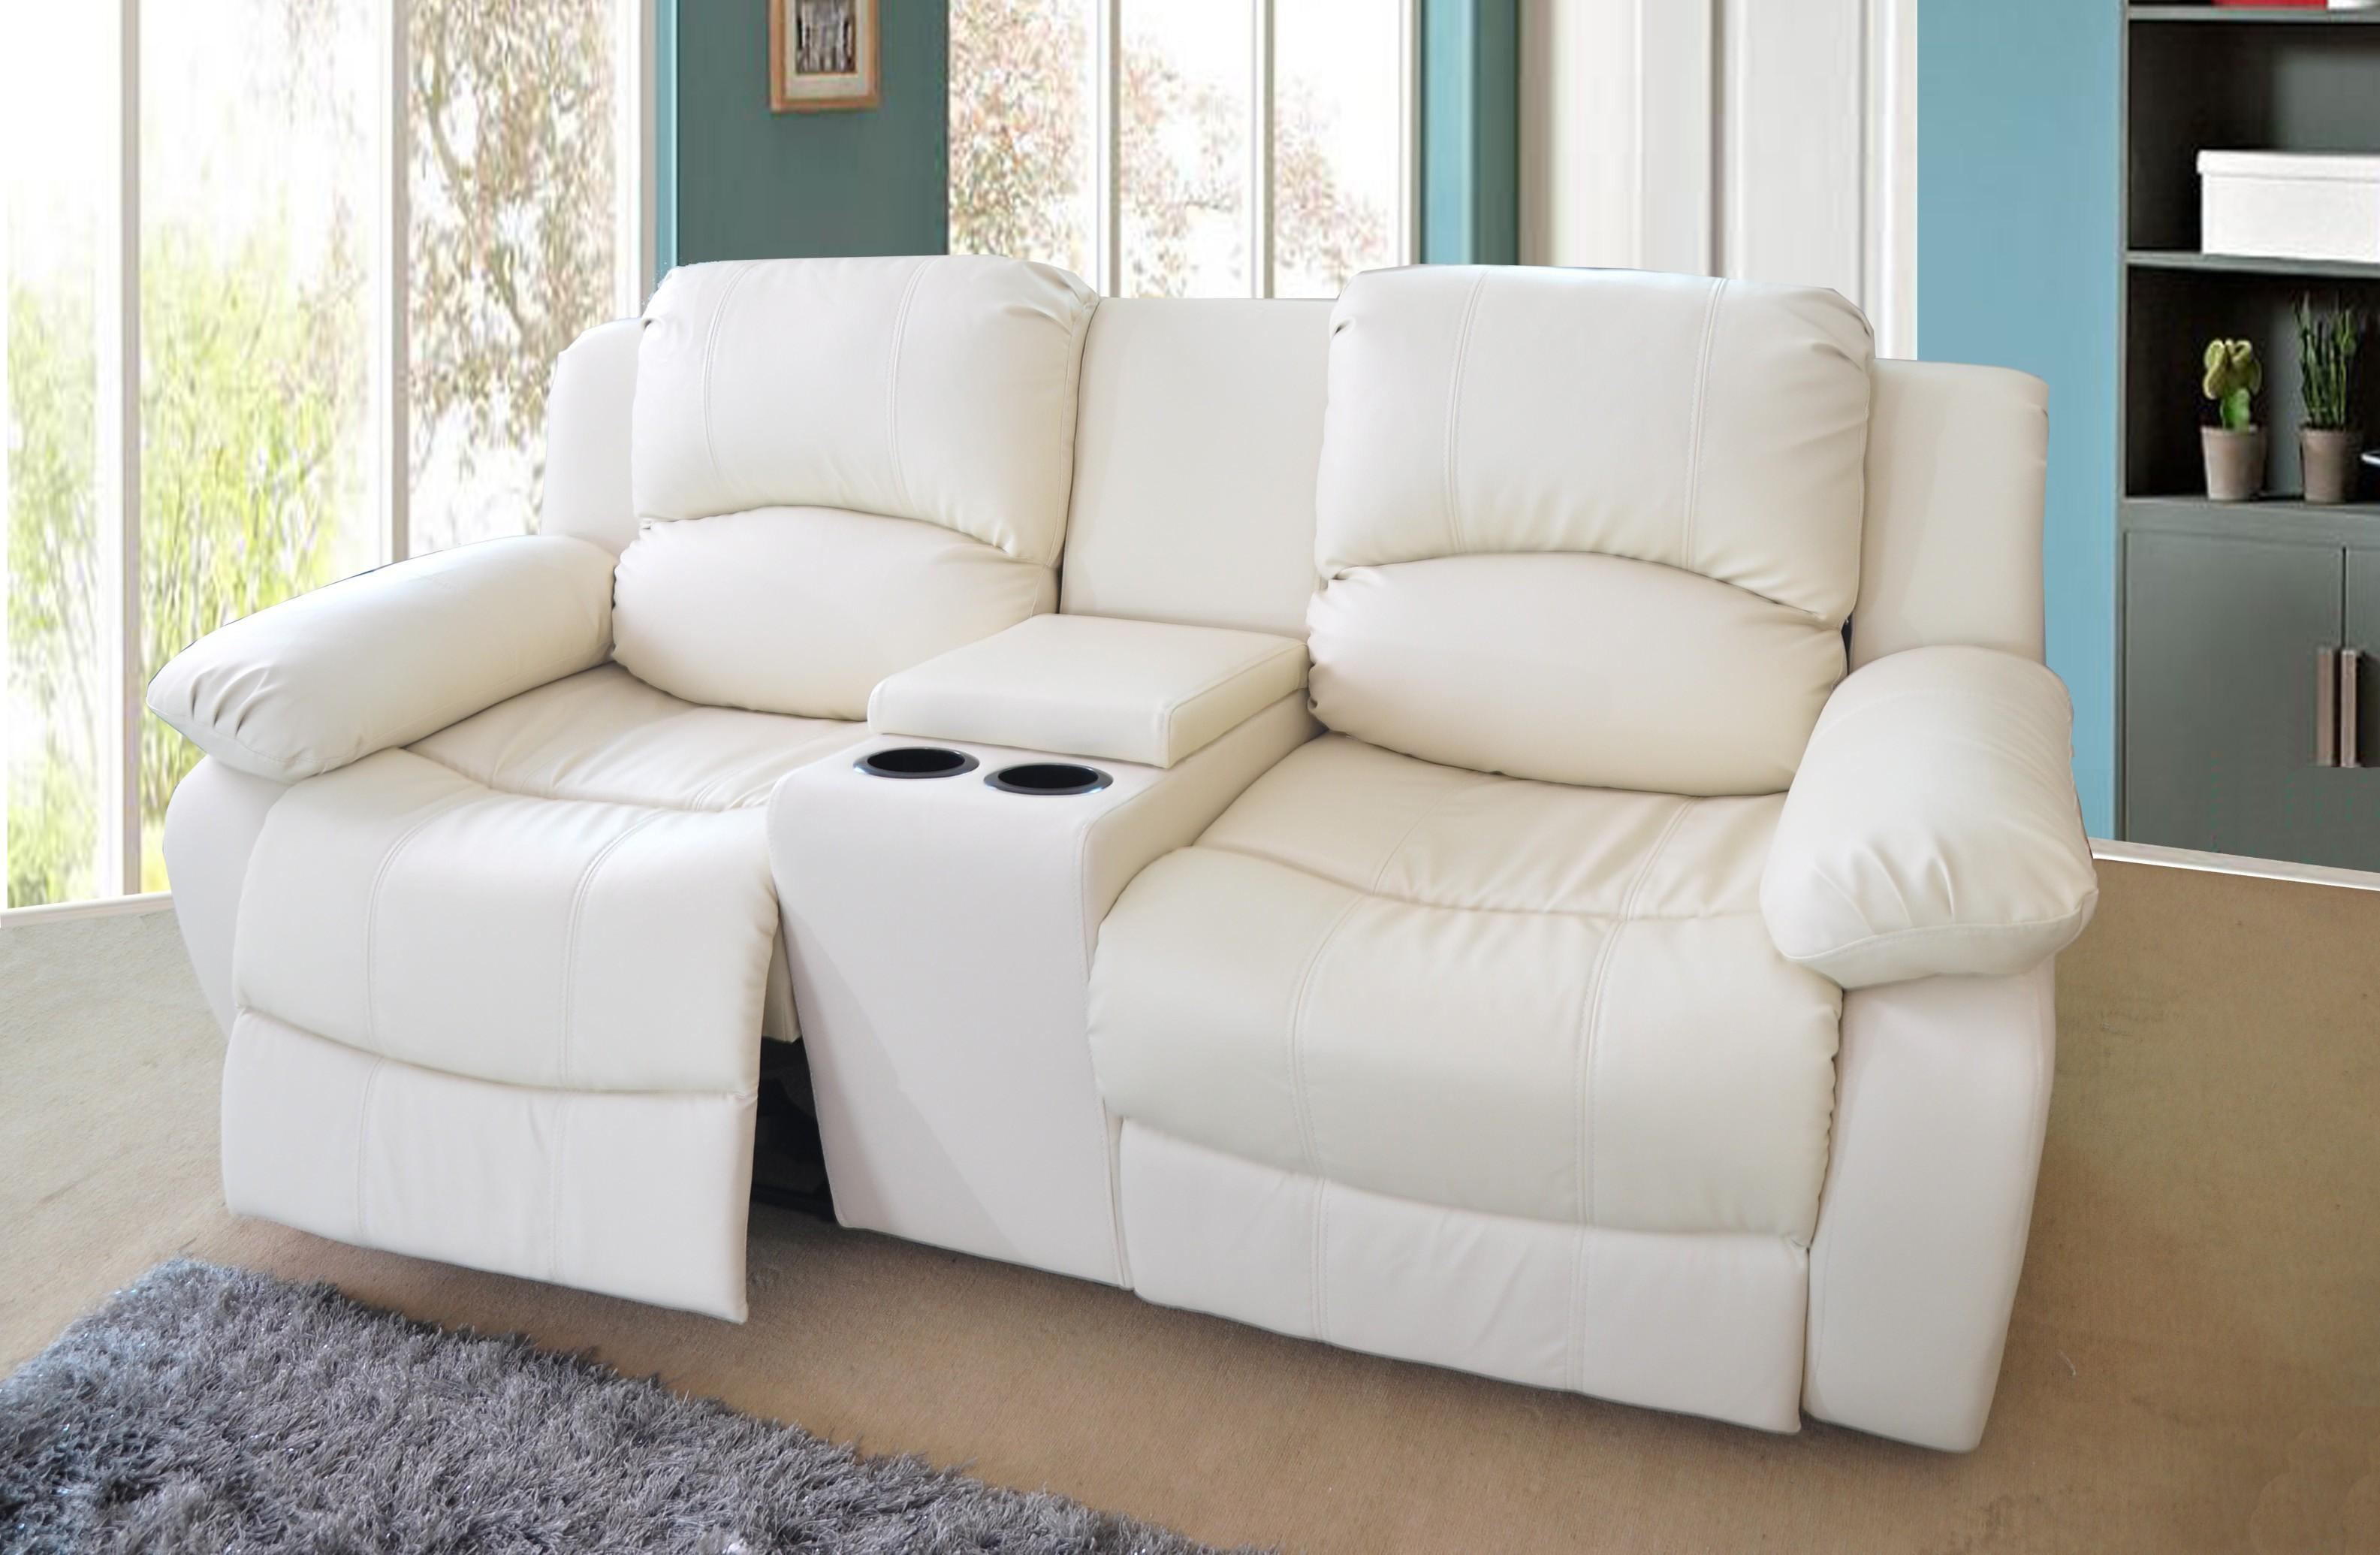 Sofas Center : Reclining Sofa With Console Magnificent Images Regarding Sofas With Consoles (Image 14 of 20)